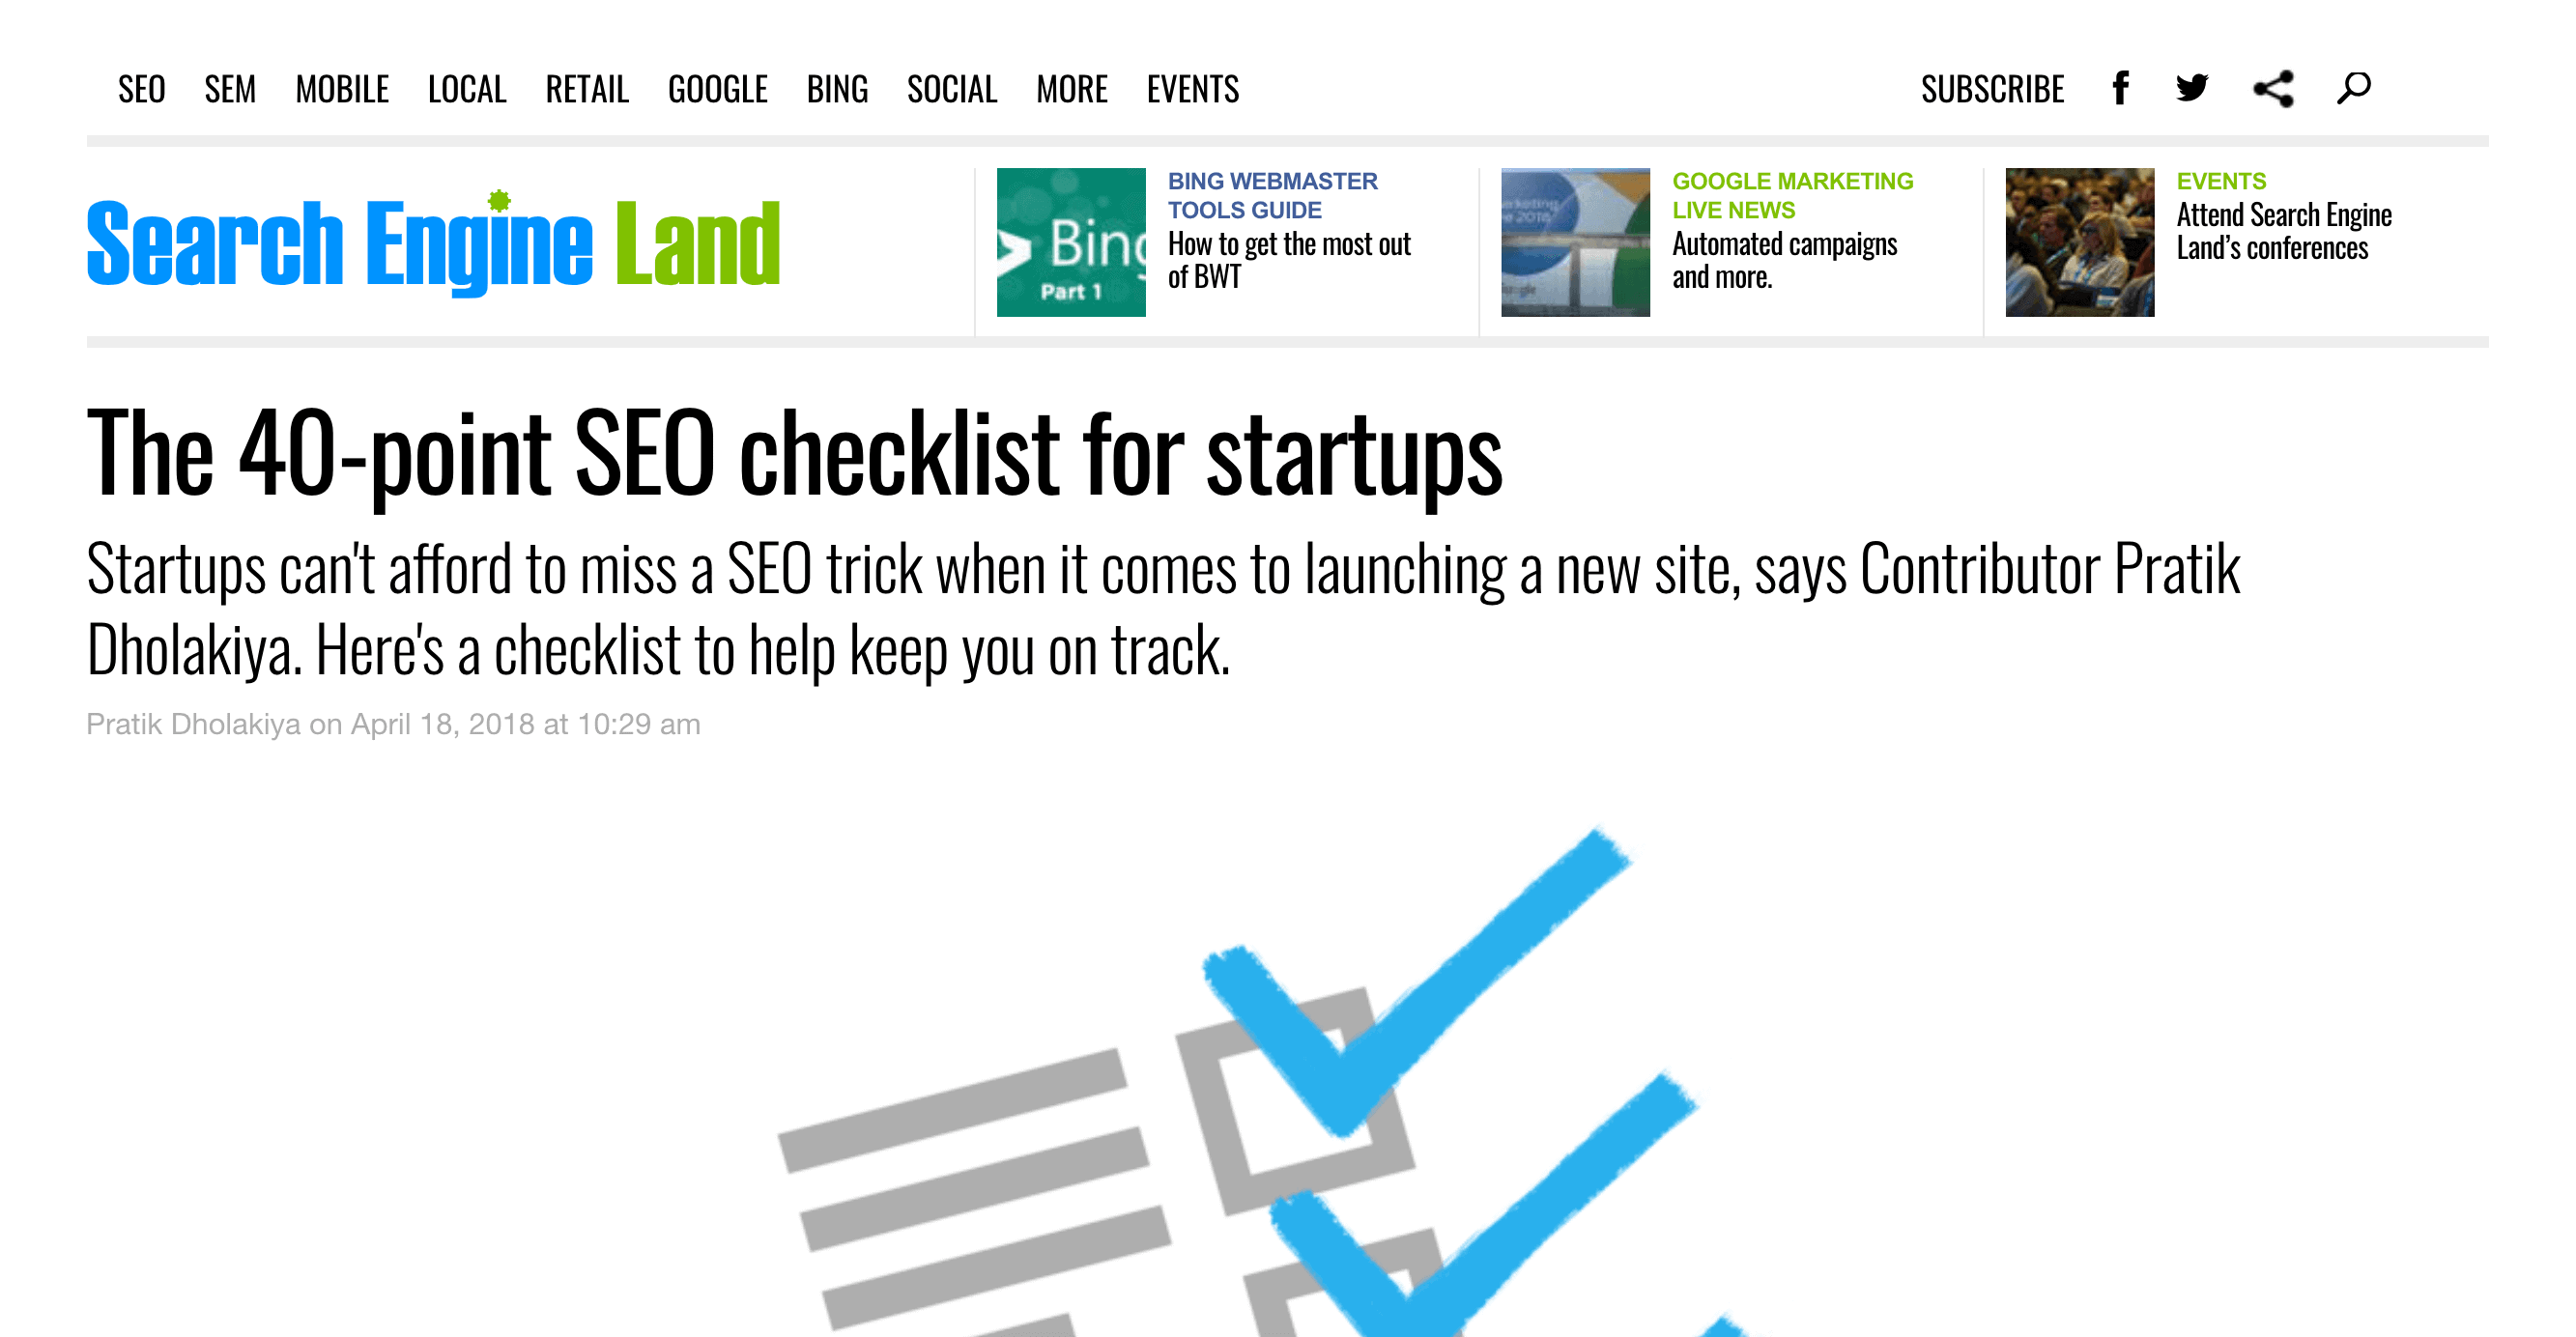 People want SEO checklists that cover a lot